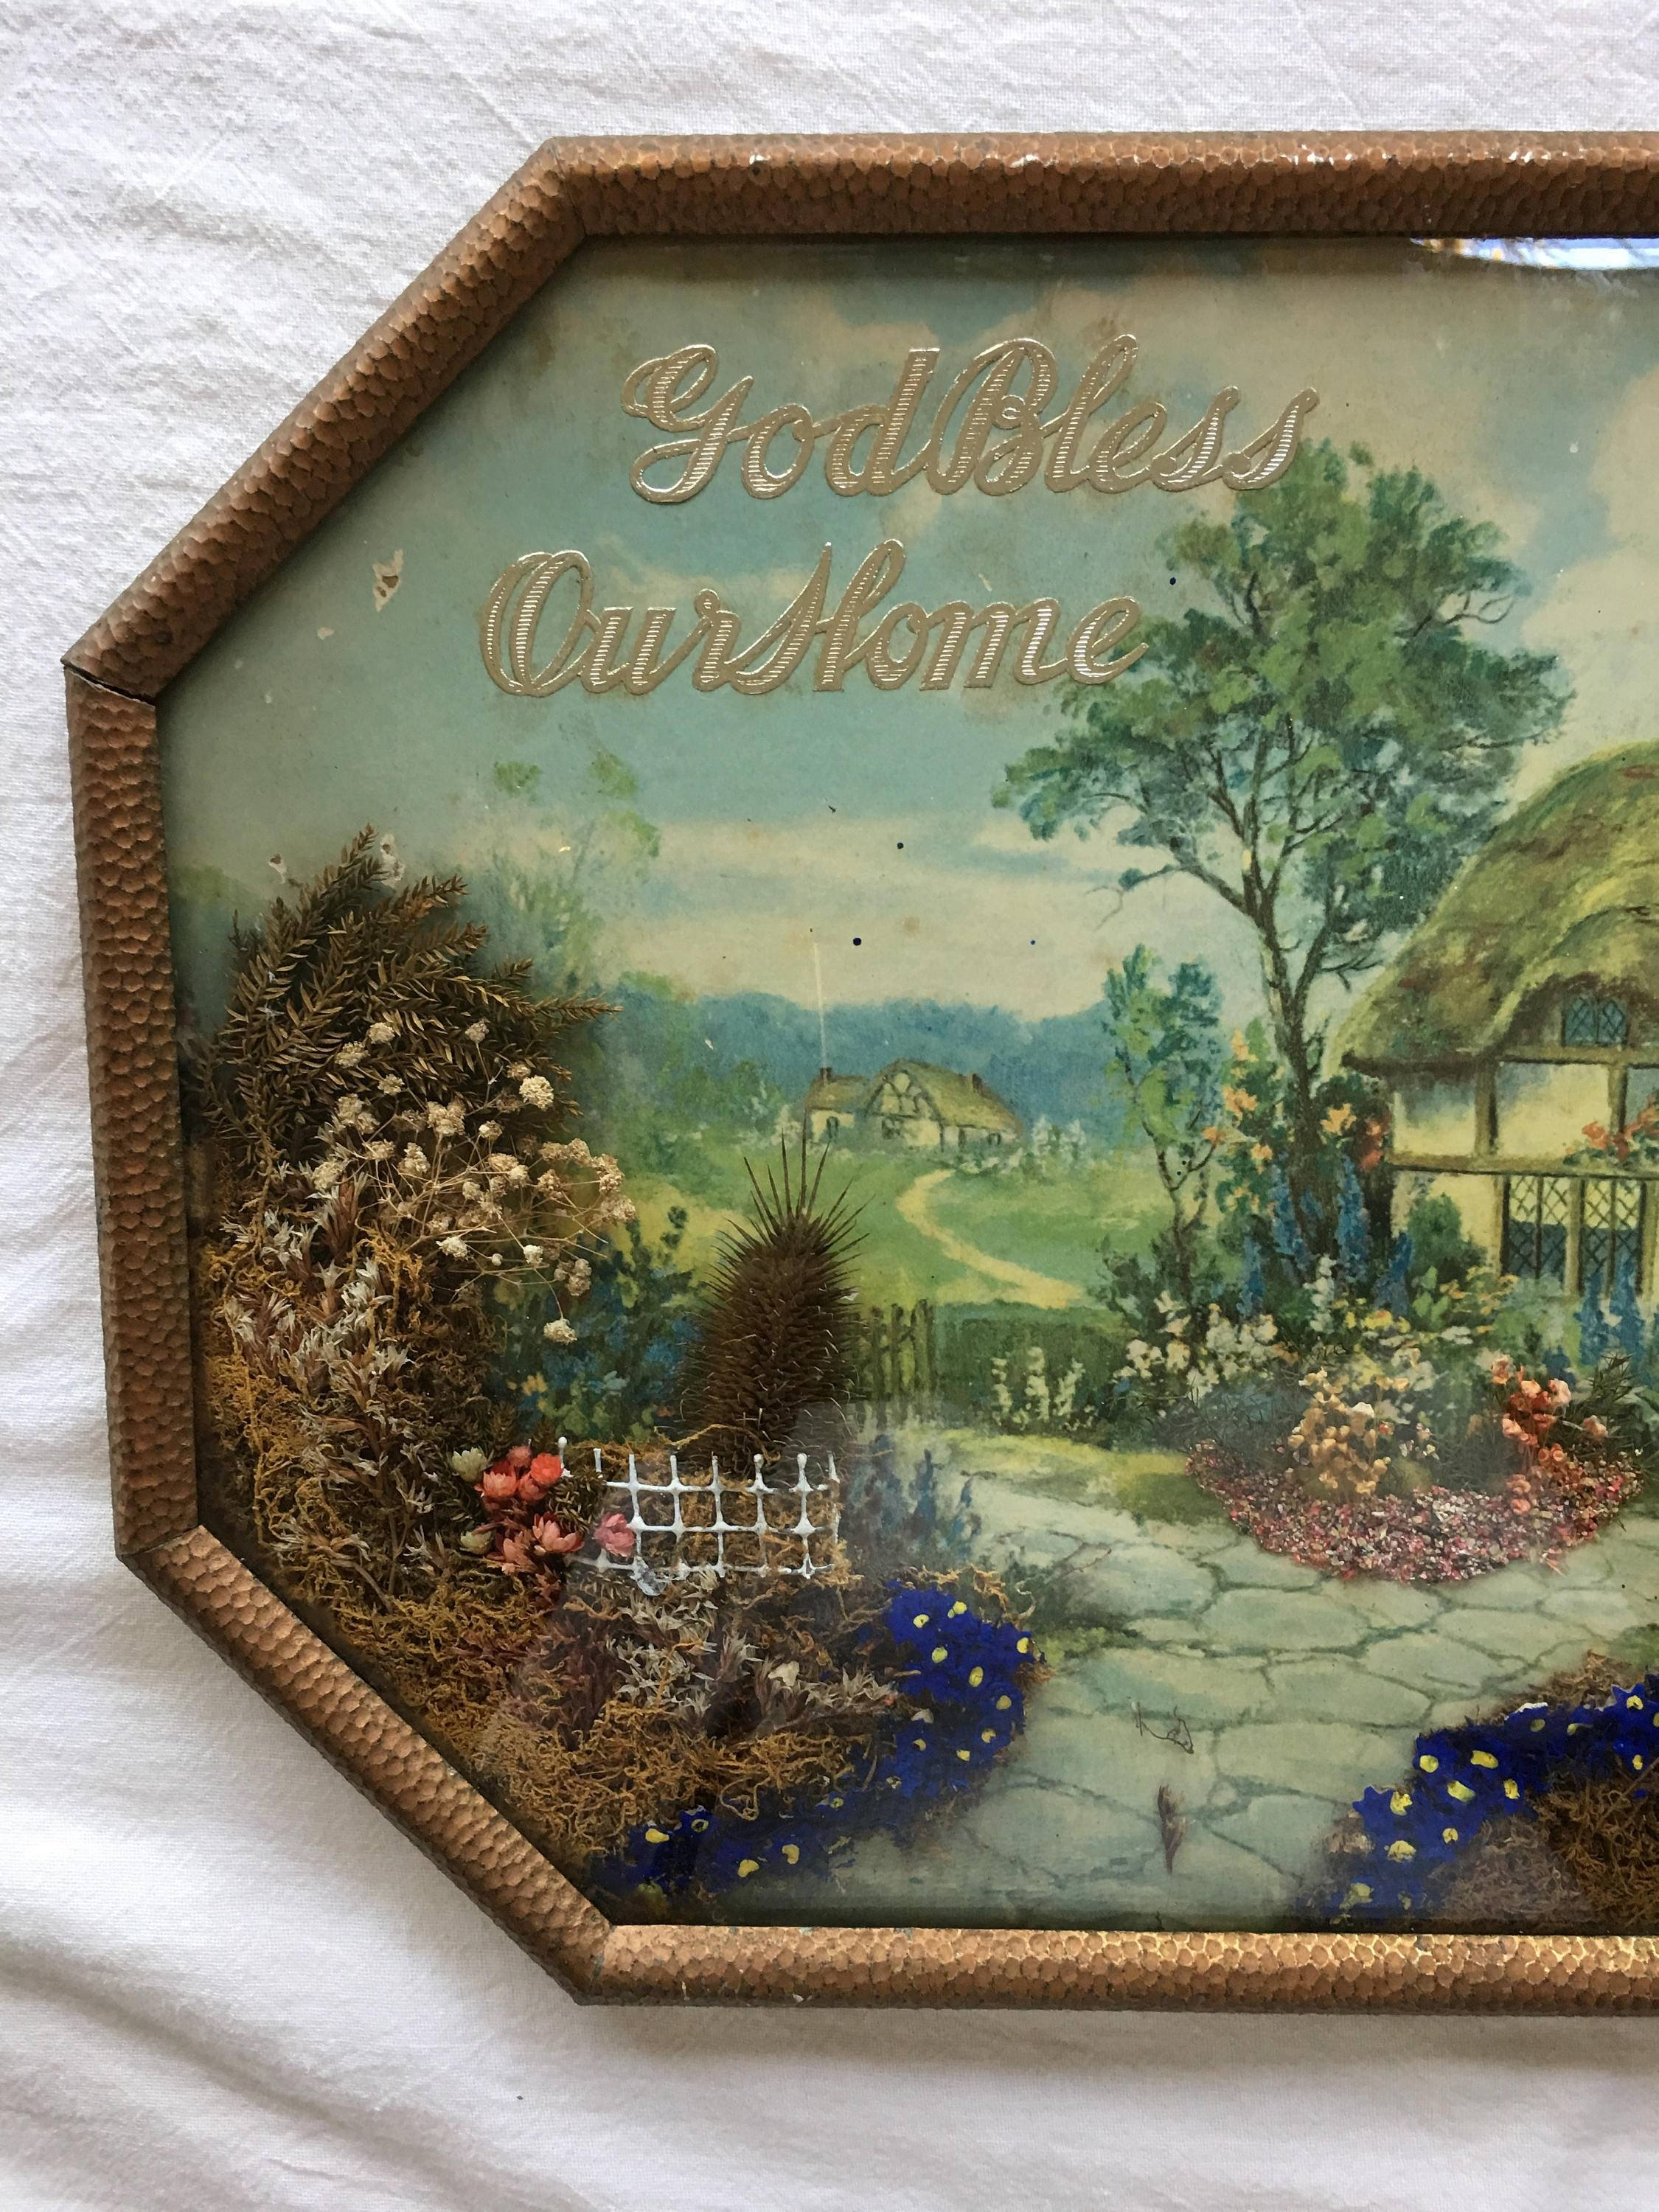 Vintage 3D Wall Art, God Bless Our Home, Dried Flowers, Cottage Regarding Most Up To Date Vintage 3D Wall Art (Gallery 5 of 20)